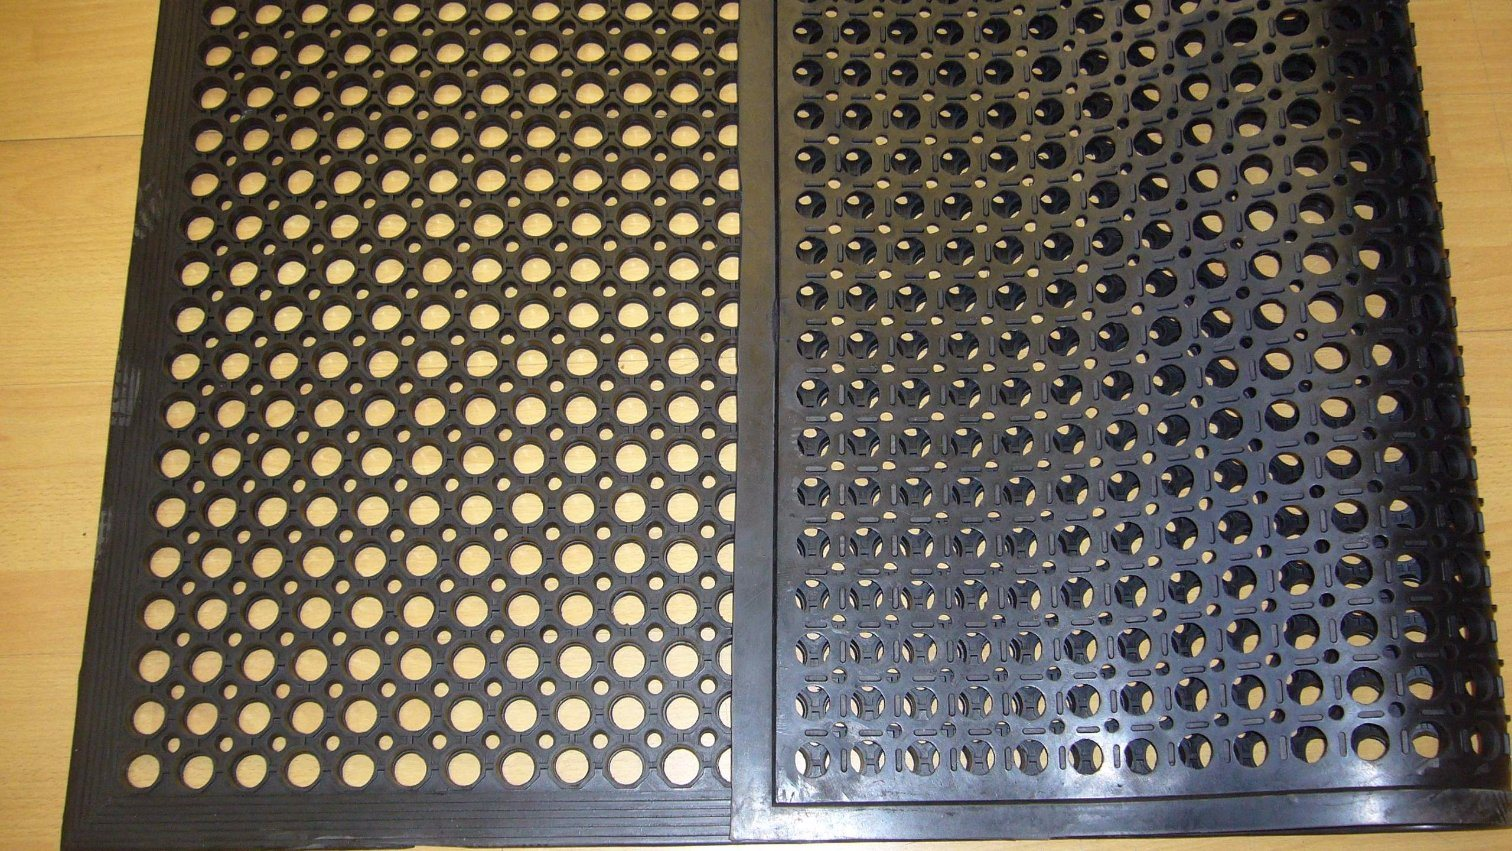 office anti has backing antimicrobial and oil facility supplies grease movement reduces eofficeproducts resistant suction to is cup water drainage mat coast red west quality safety mats breakroom rubber fatigue utility